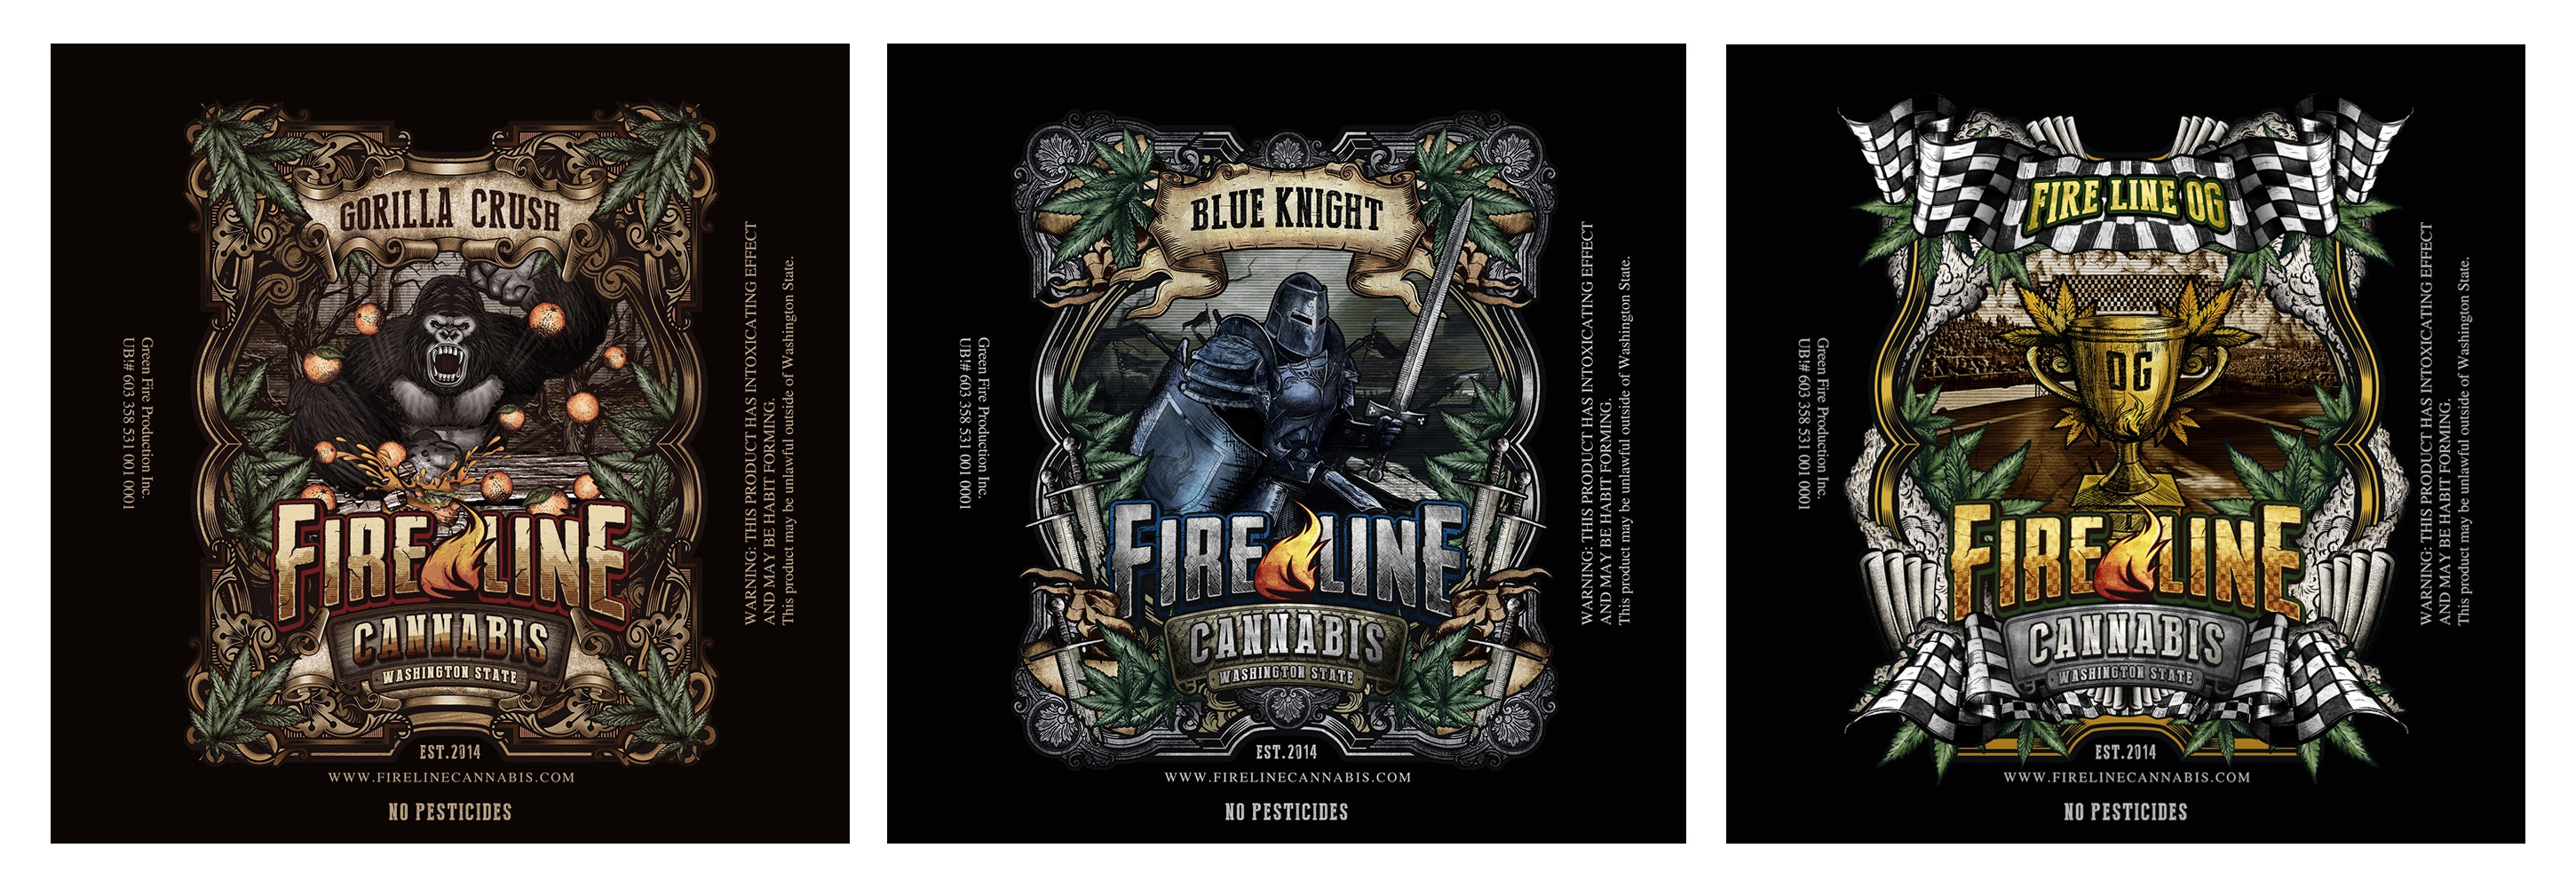 Additional Label for Fire Line Cannabis Label#3